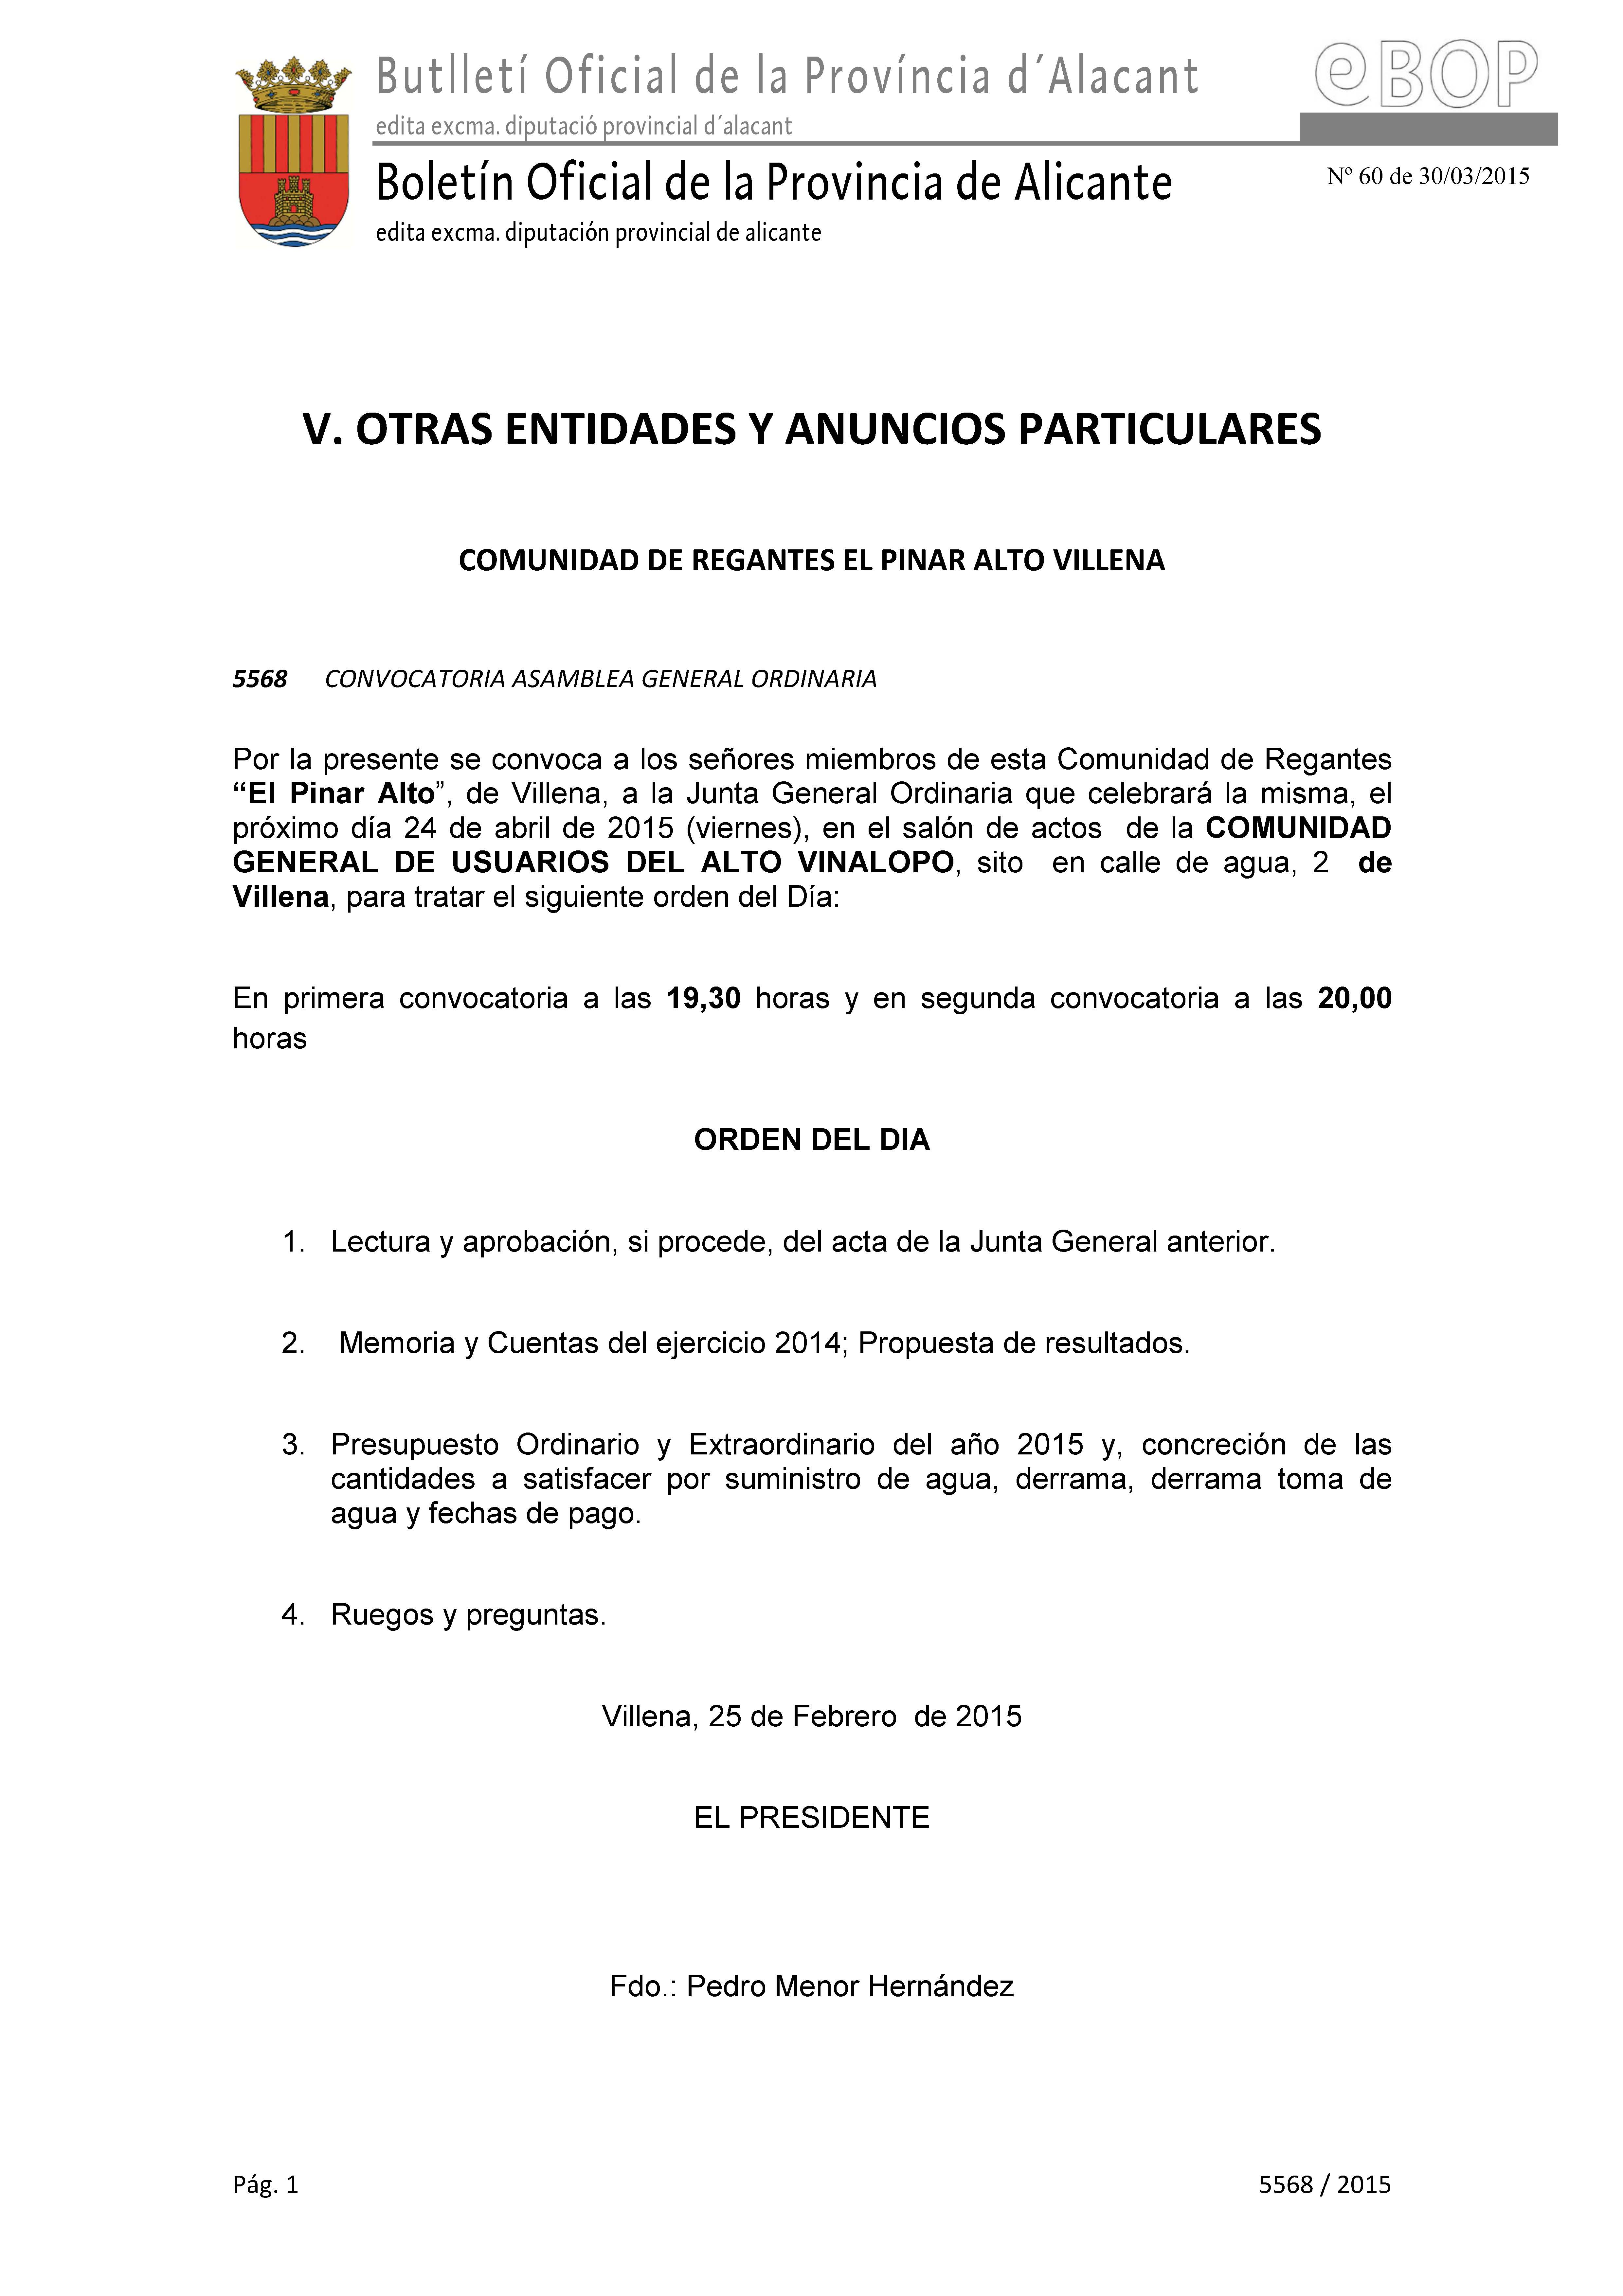 Convocatoria Junta General 24/04/2015